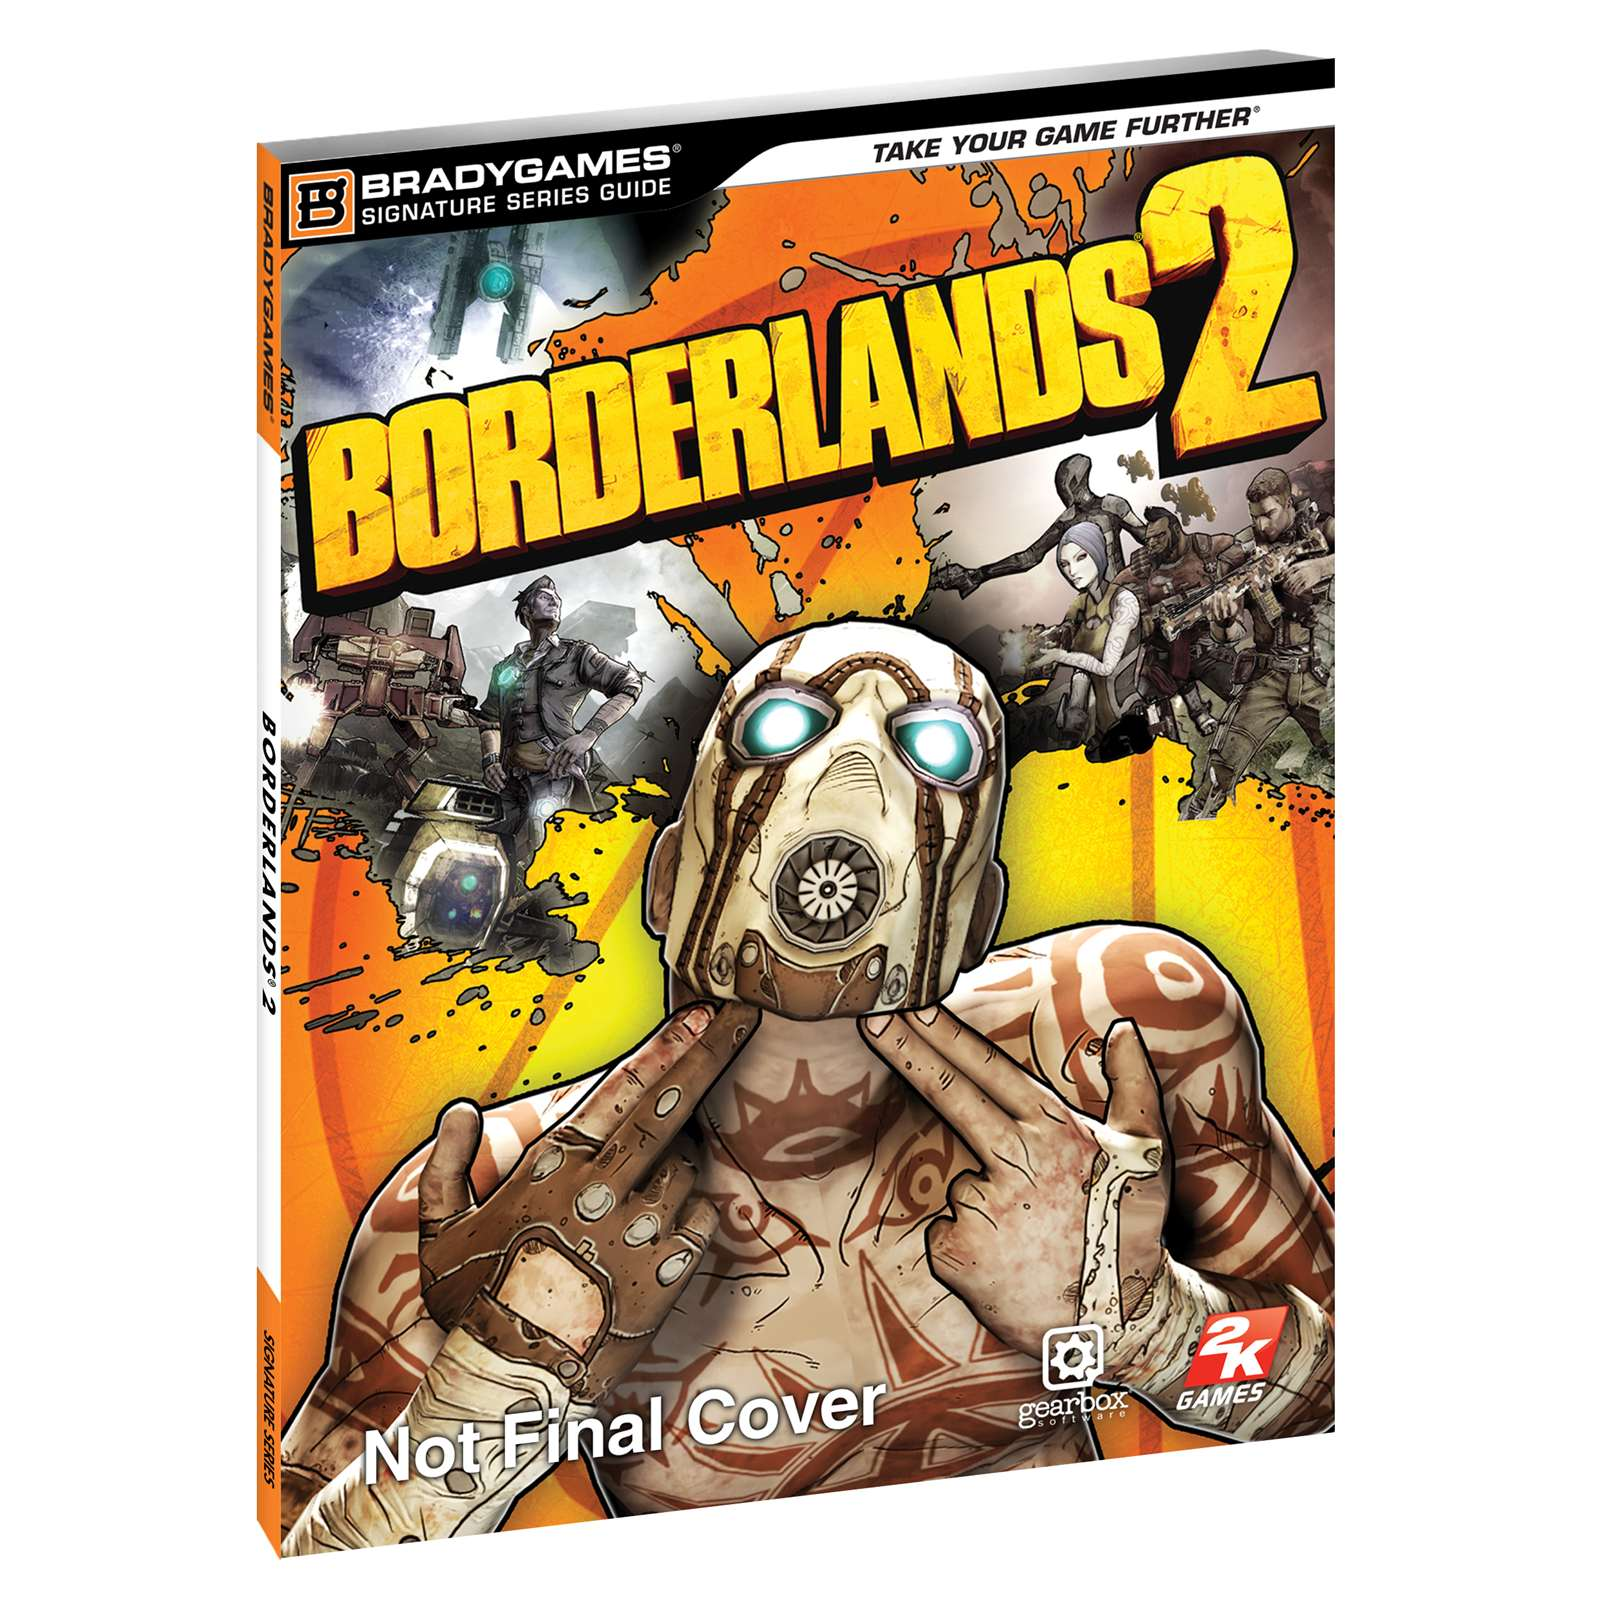 Borderlands 2 strategy guide limited edition hardback like-new.